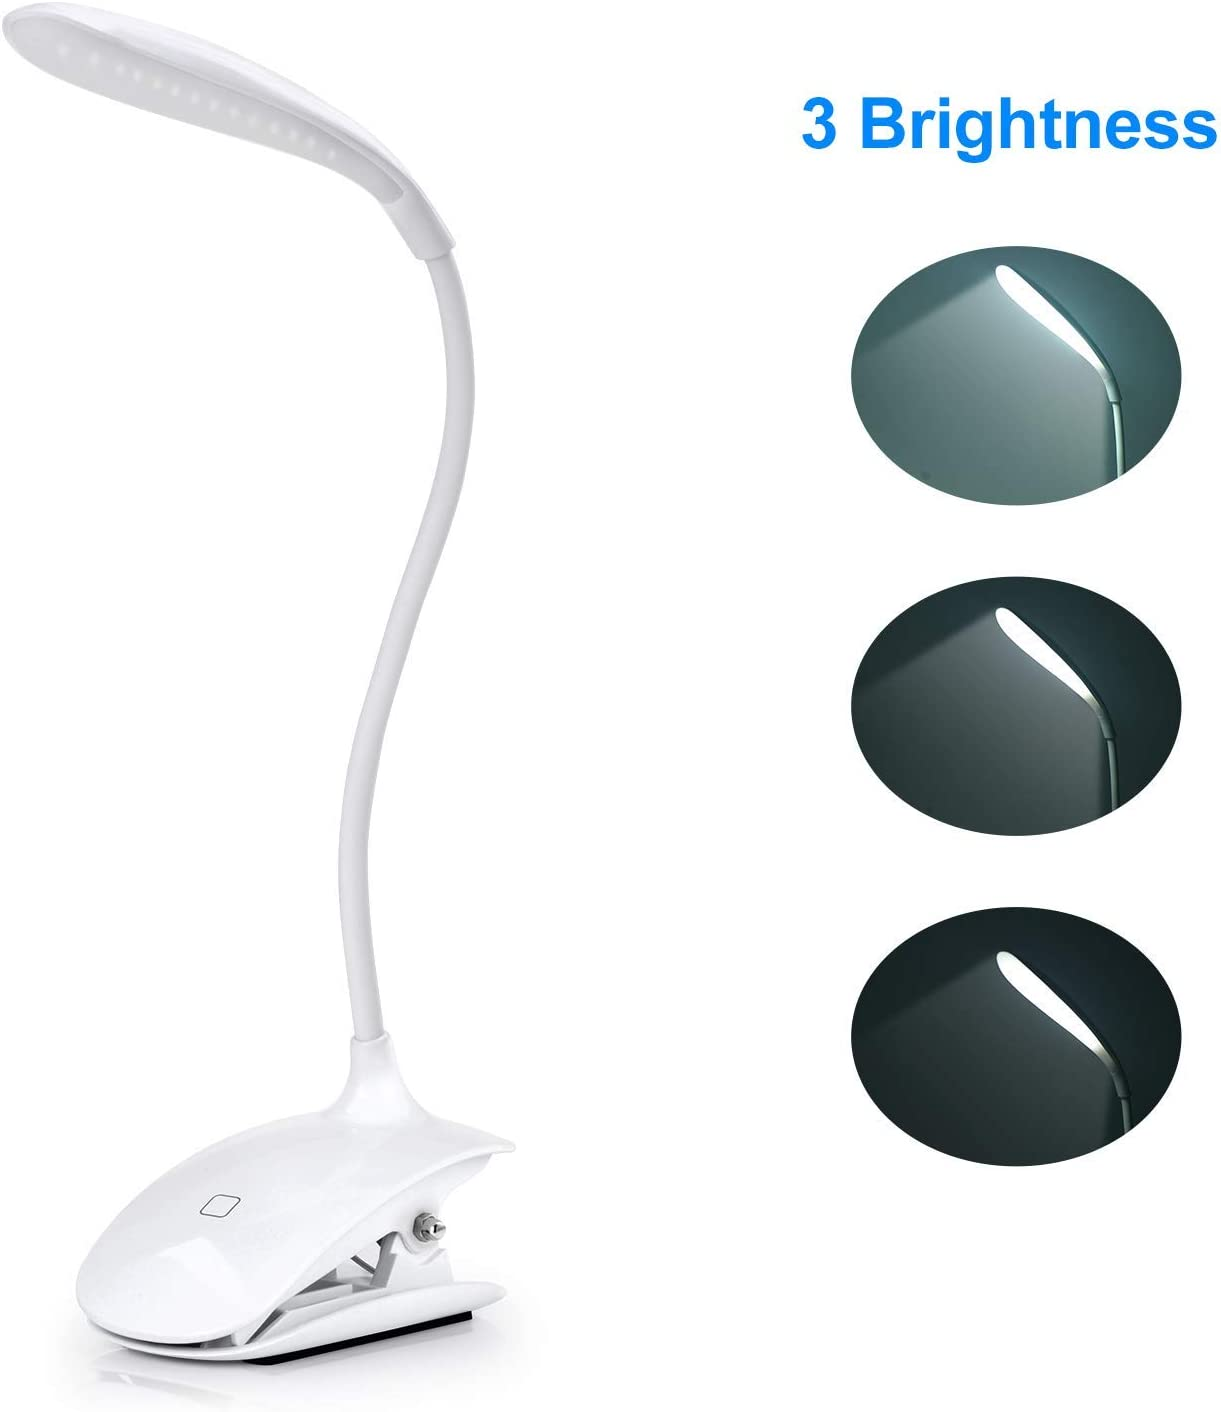 White ADORIC LED Reading Lamp Rechargeable Book Lamp with USB Cable 3 Levels of Brightness